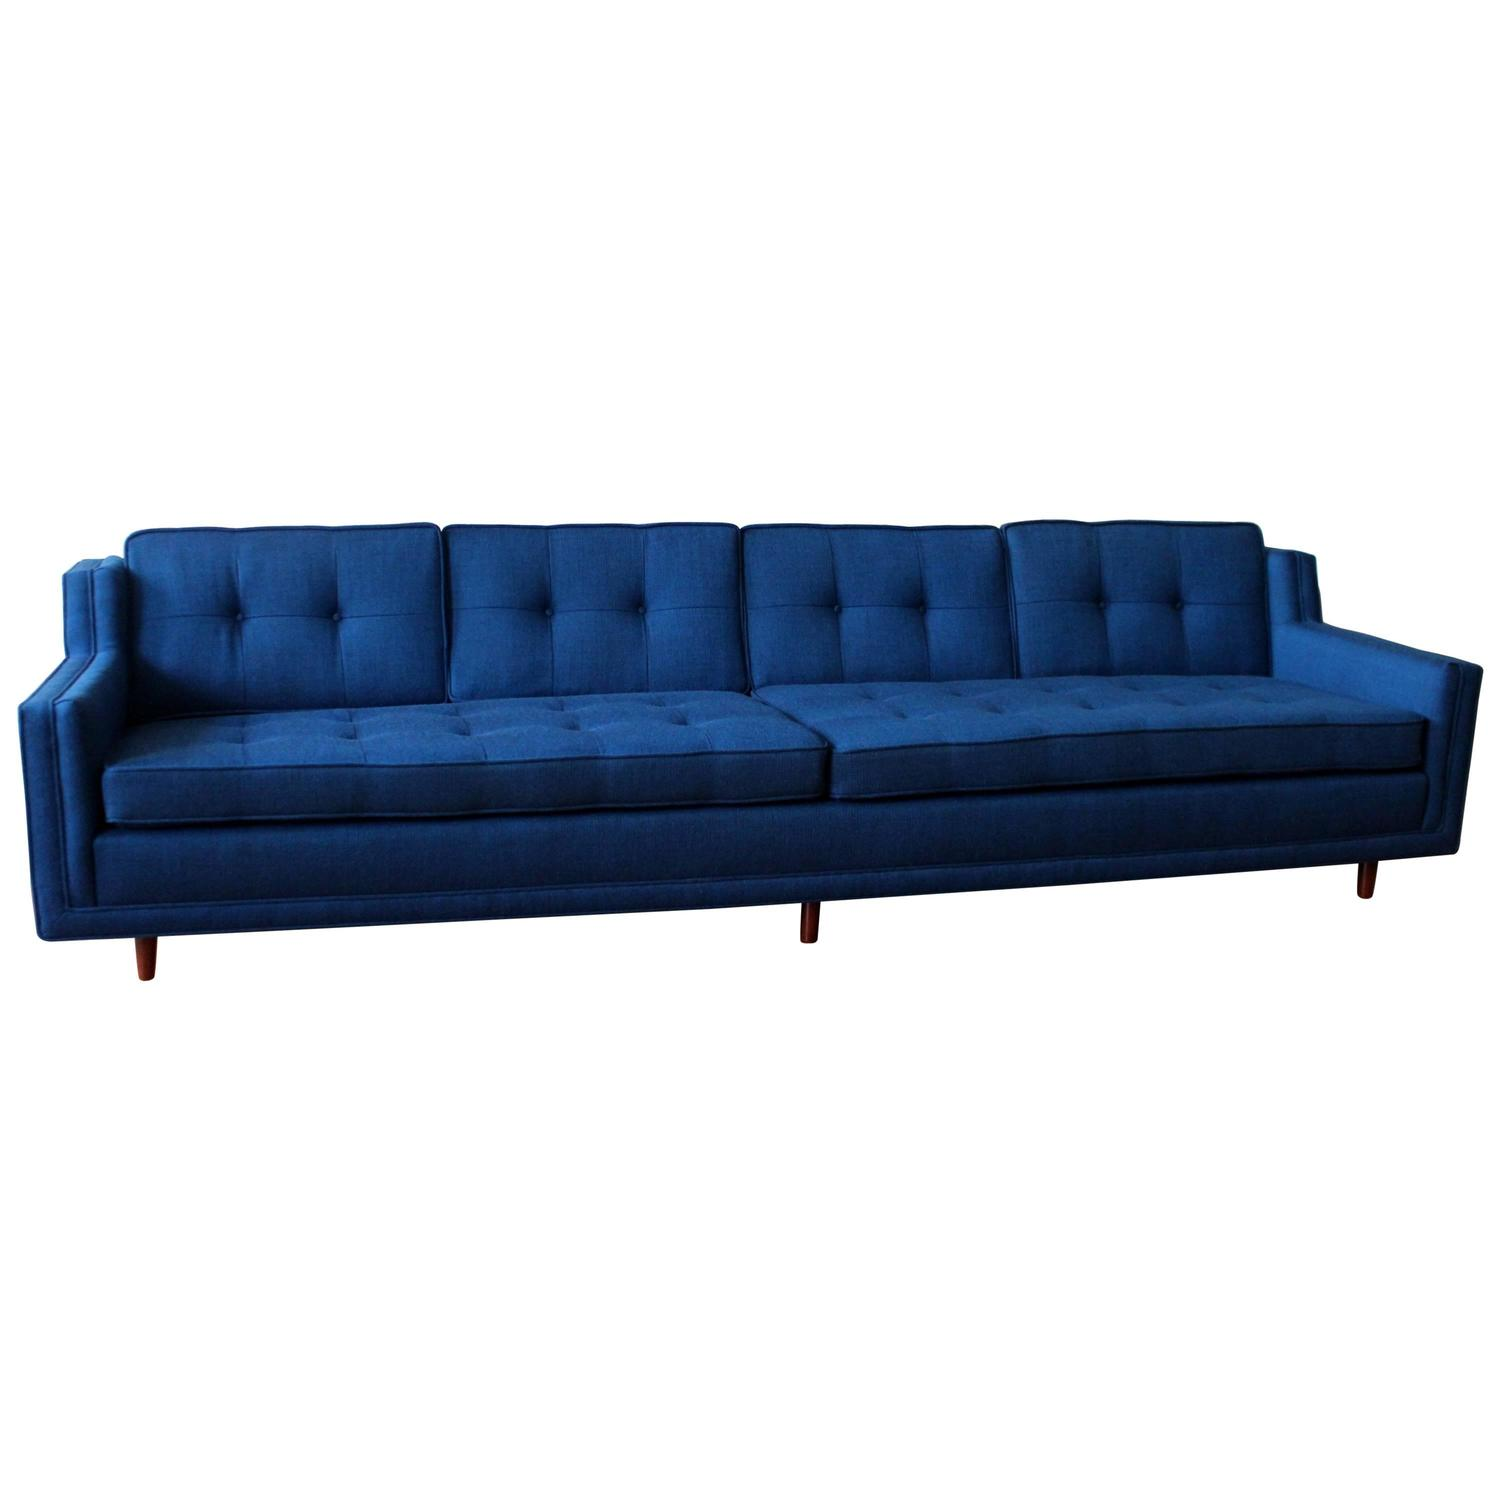 Blue Mid Century Modern Low Slung Nemschoff Sofa An Orange Moon Uber Hip Vintage Furniture